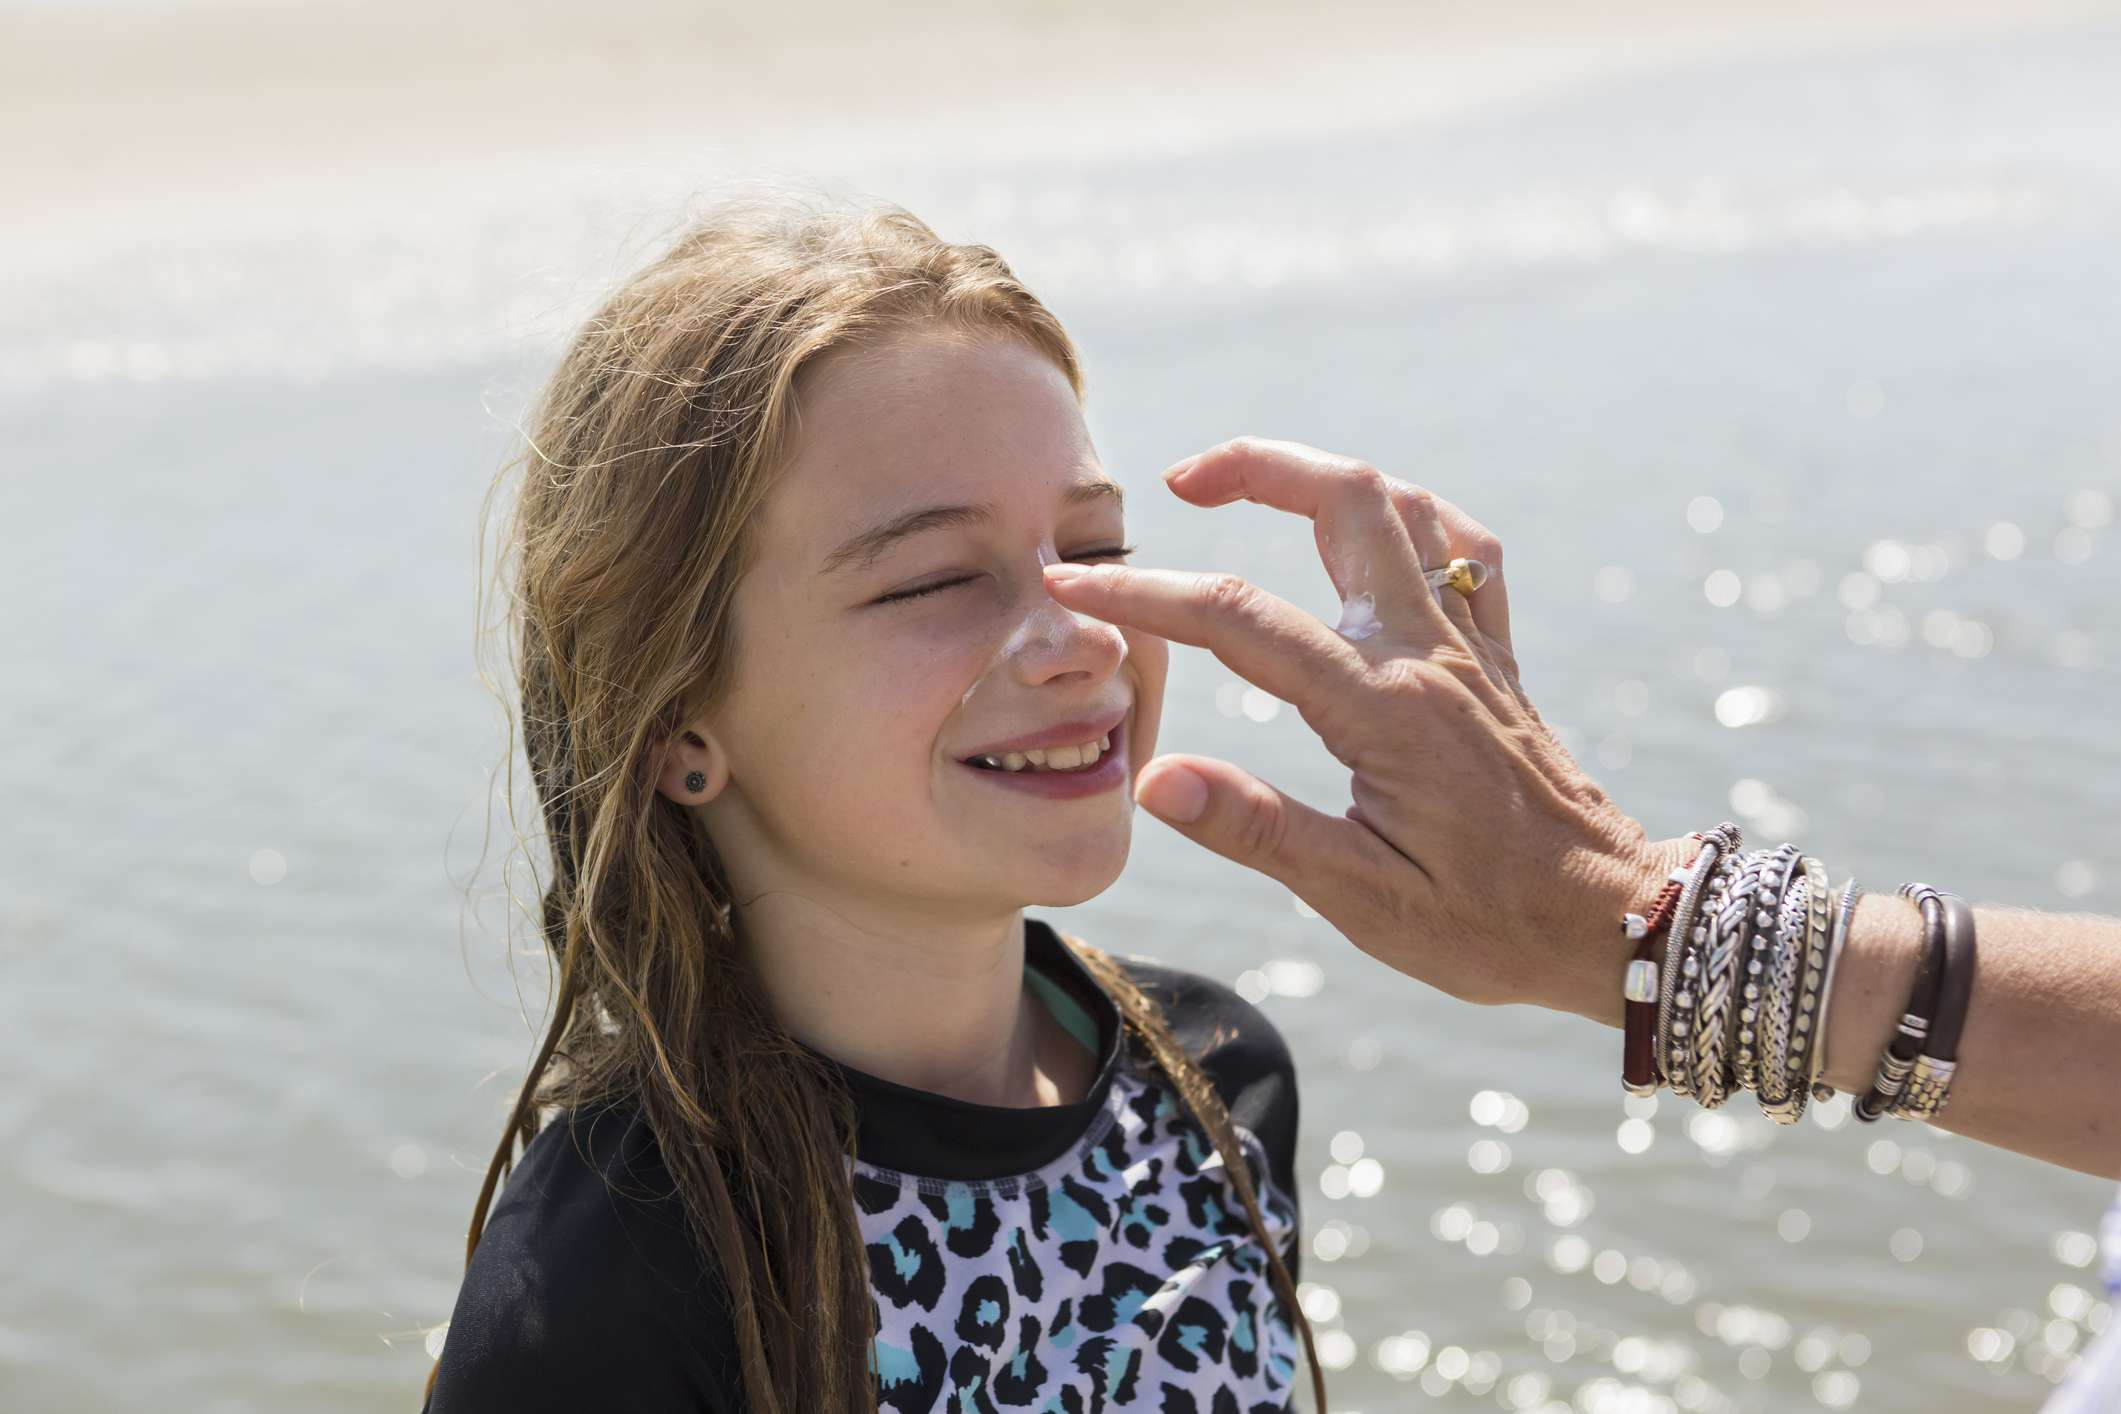 An adult with bracelets applies sunscreen on a white girl's face at the beach.